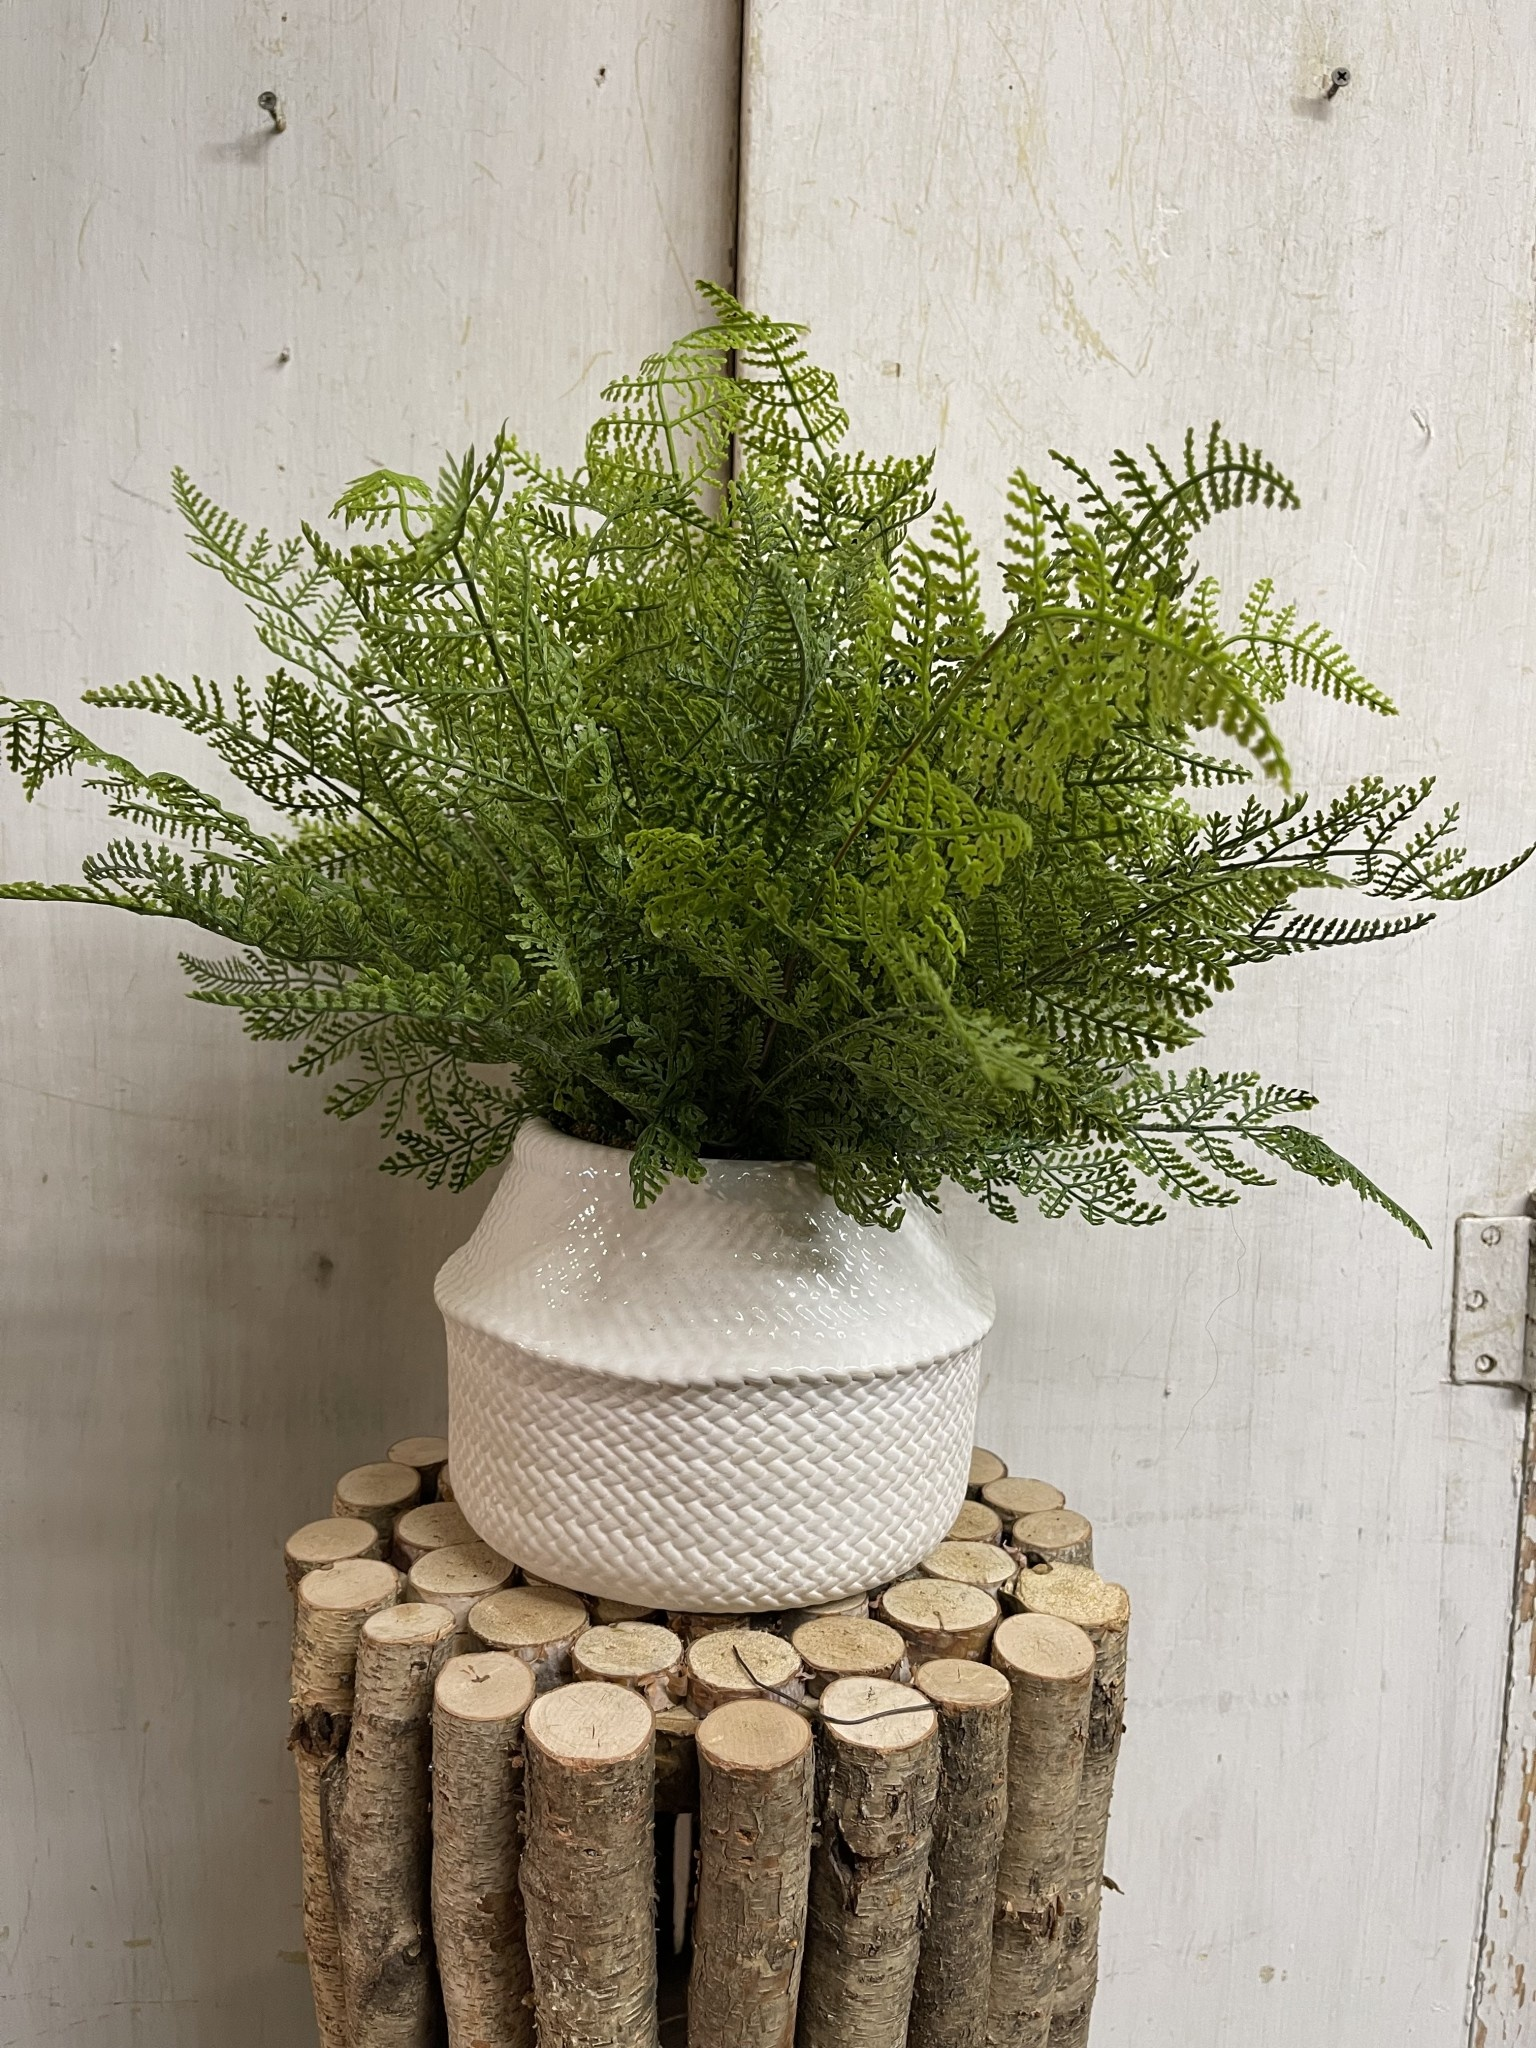 Custom Lace Fern in Ceramic Wicker Textured Container